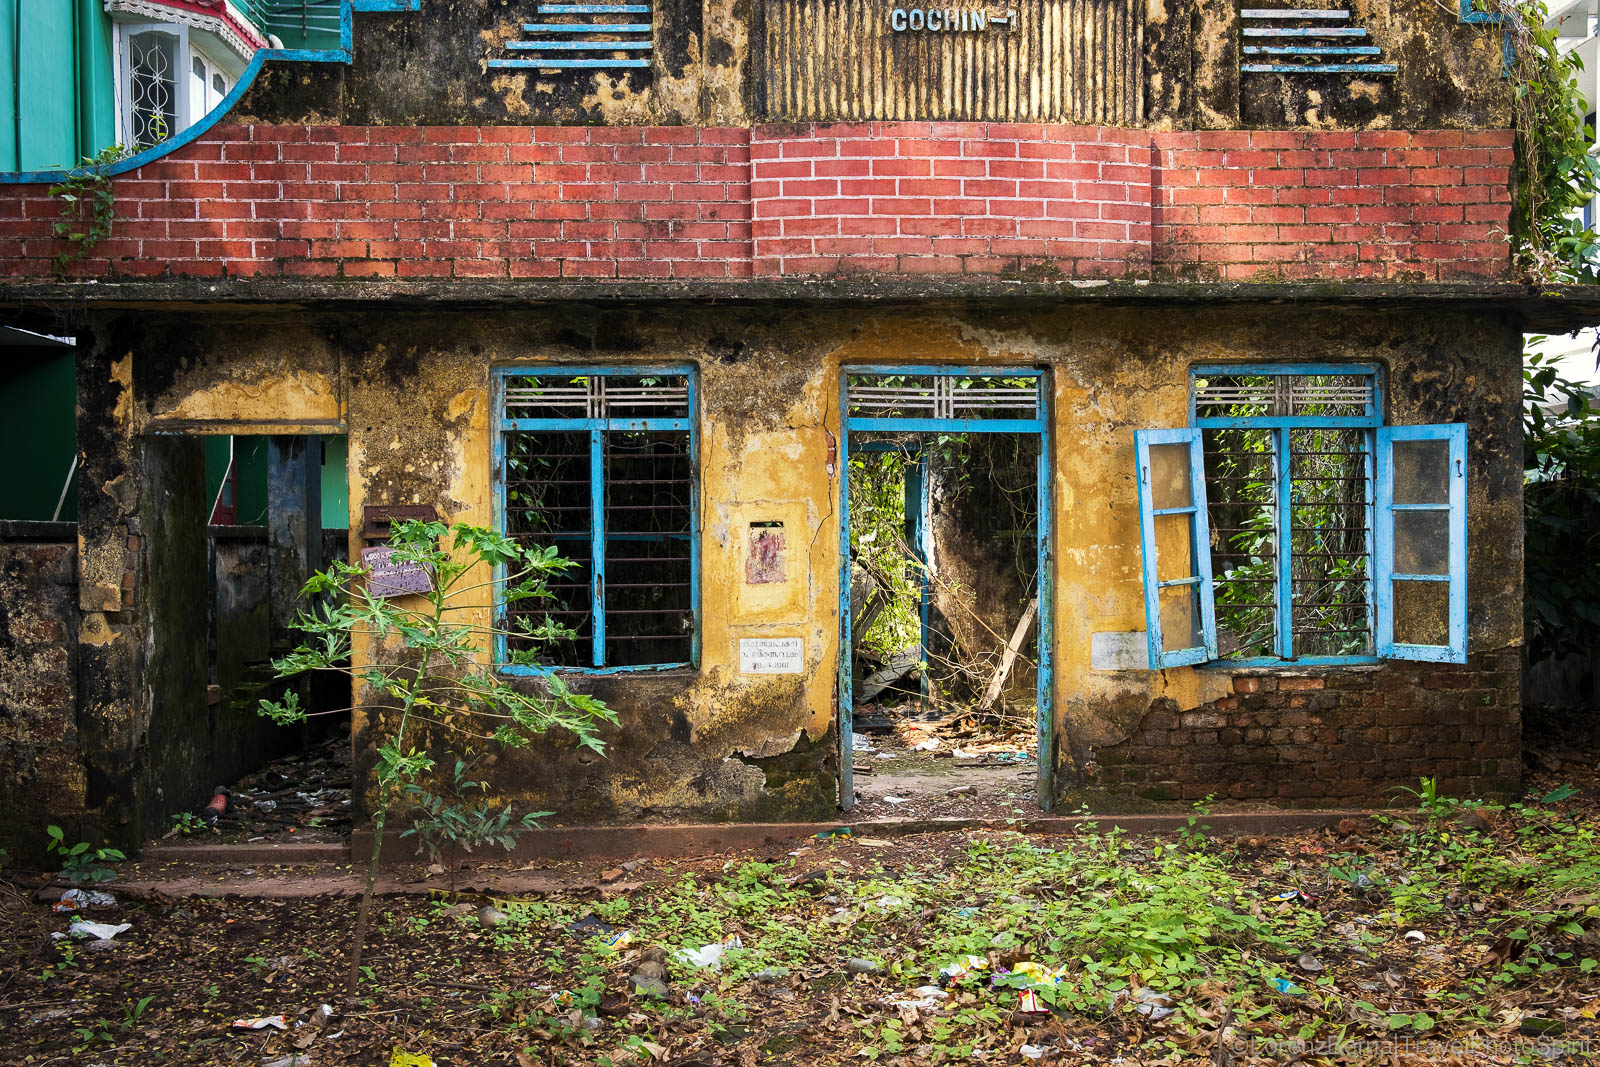 The vegetation is enveloping a colourful colonial abandoned house in the heart of Fort Kochi, Kerala, India